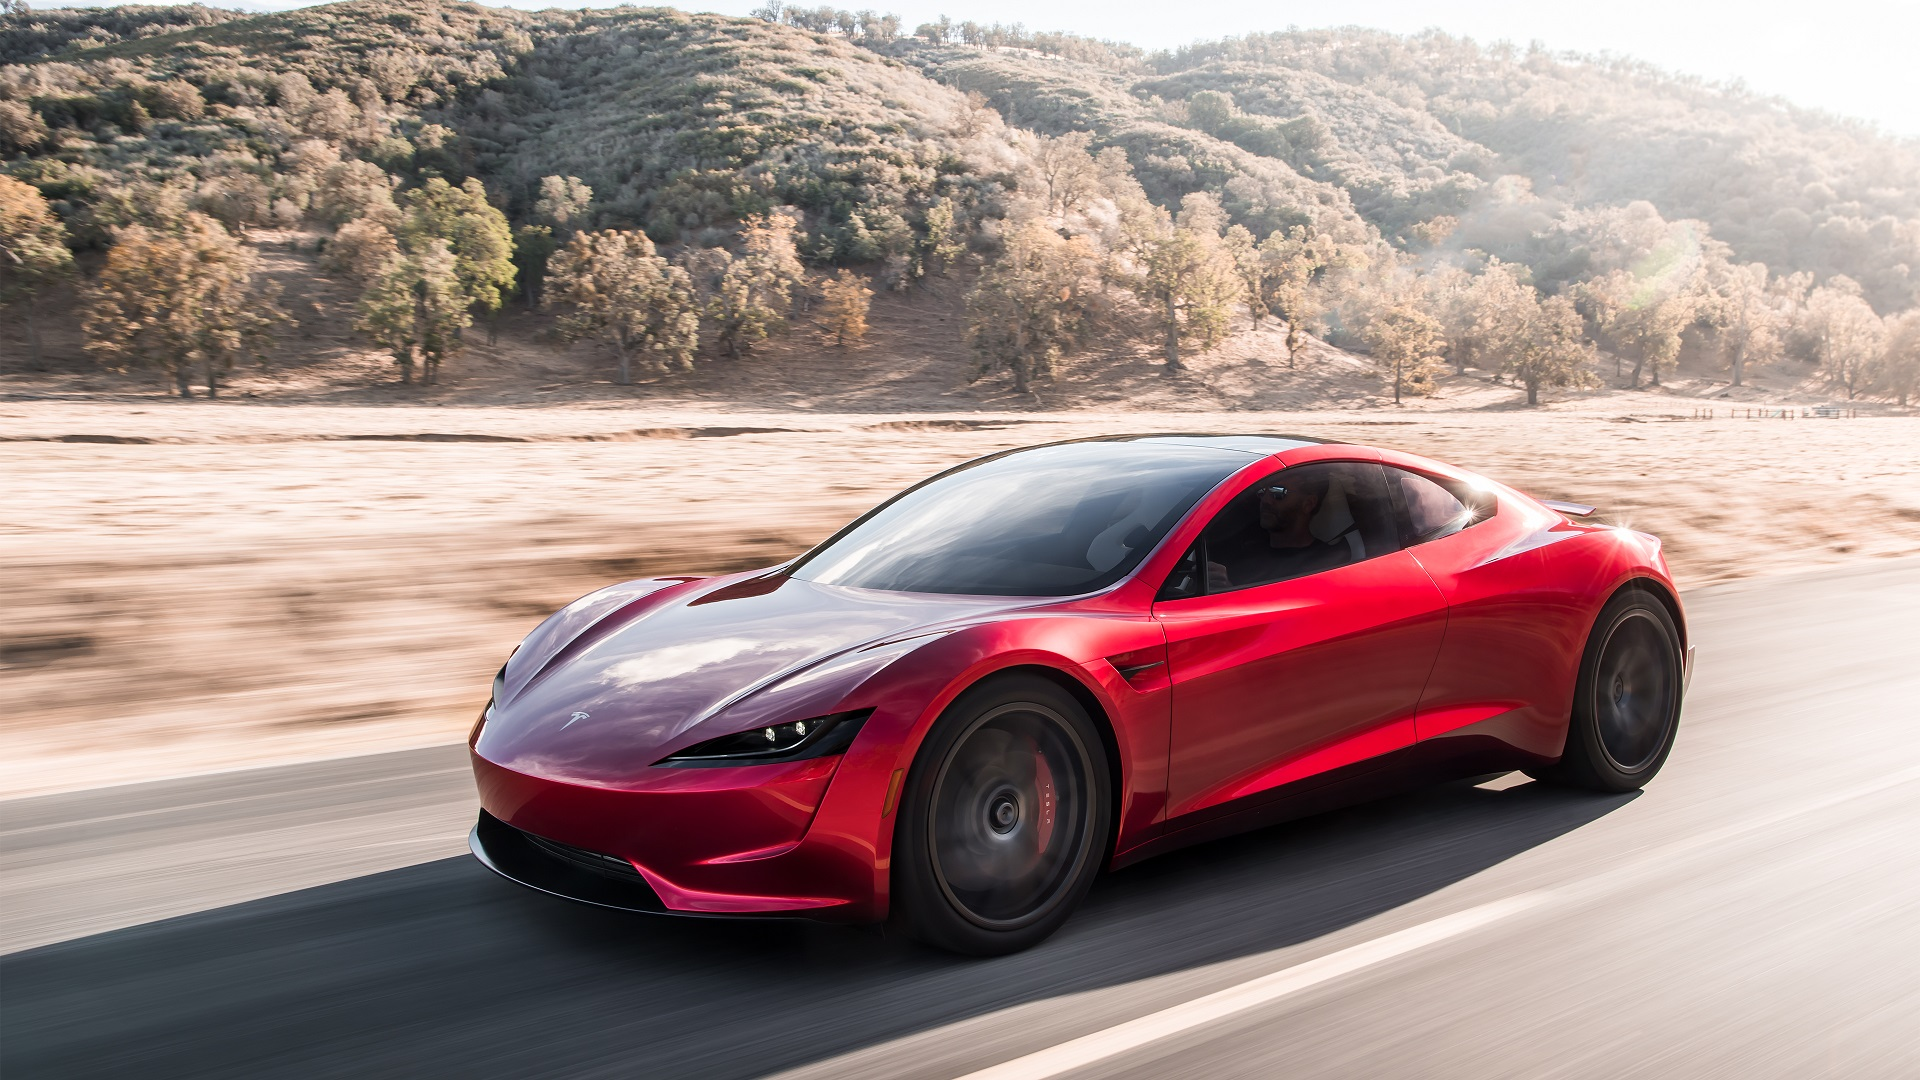 Elon Musk on Joe Rogan Podcast said he wants the new Tesla Roadster to hover